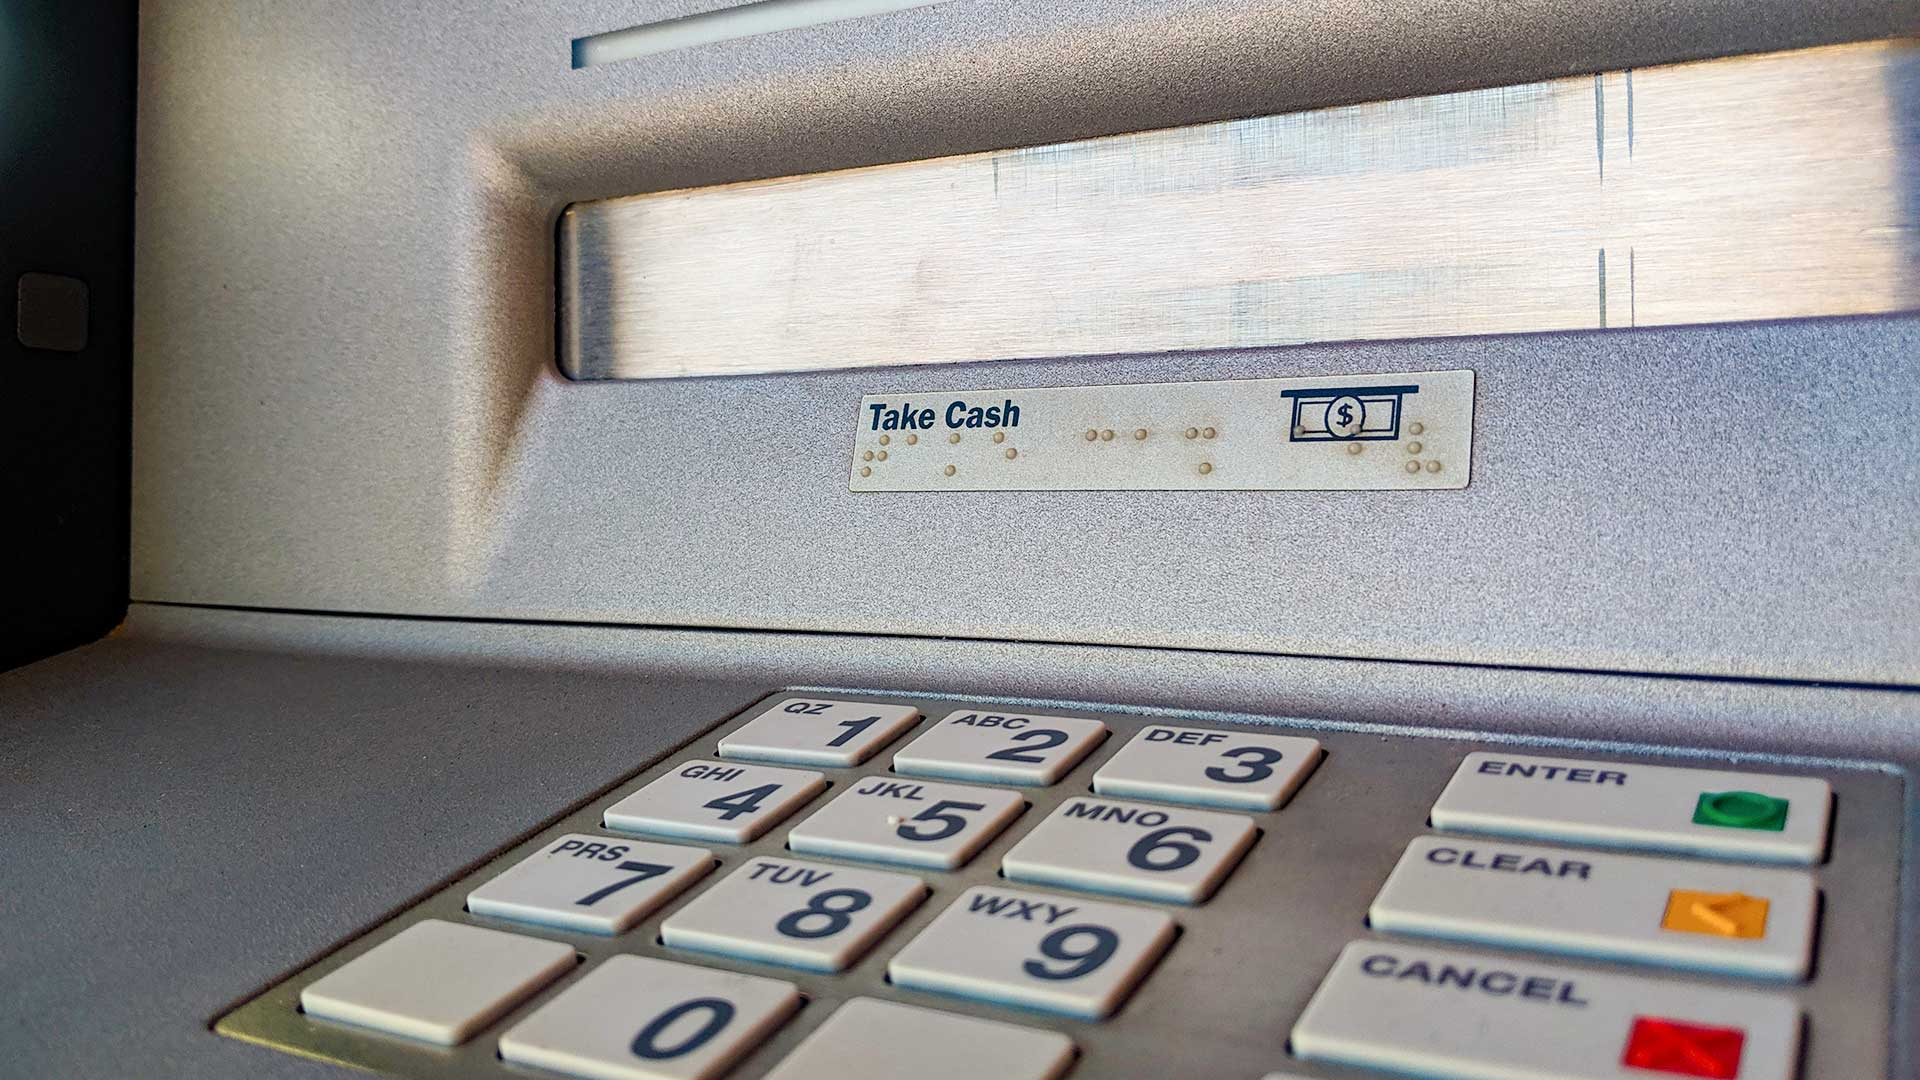 The number pad and cash dispenser at an ATM.